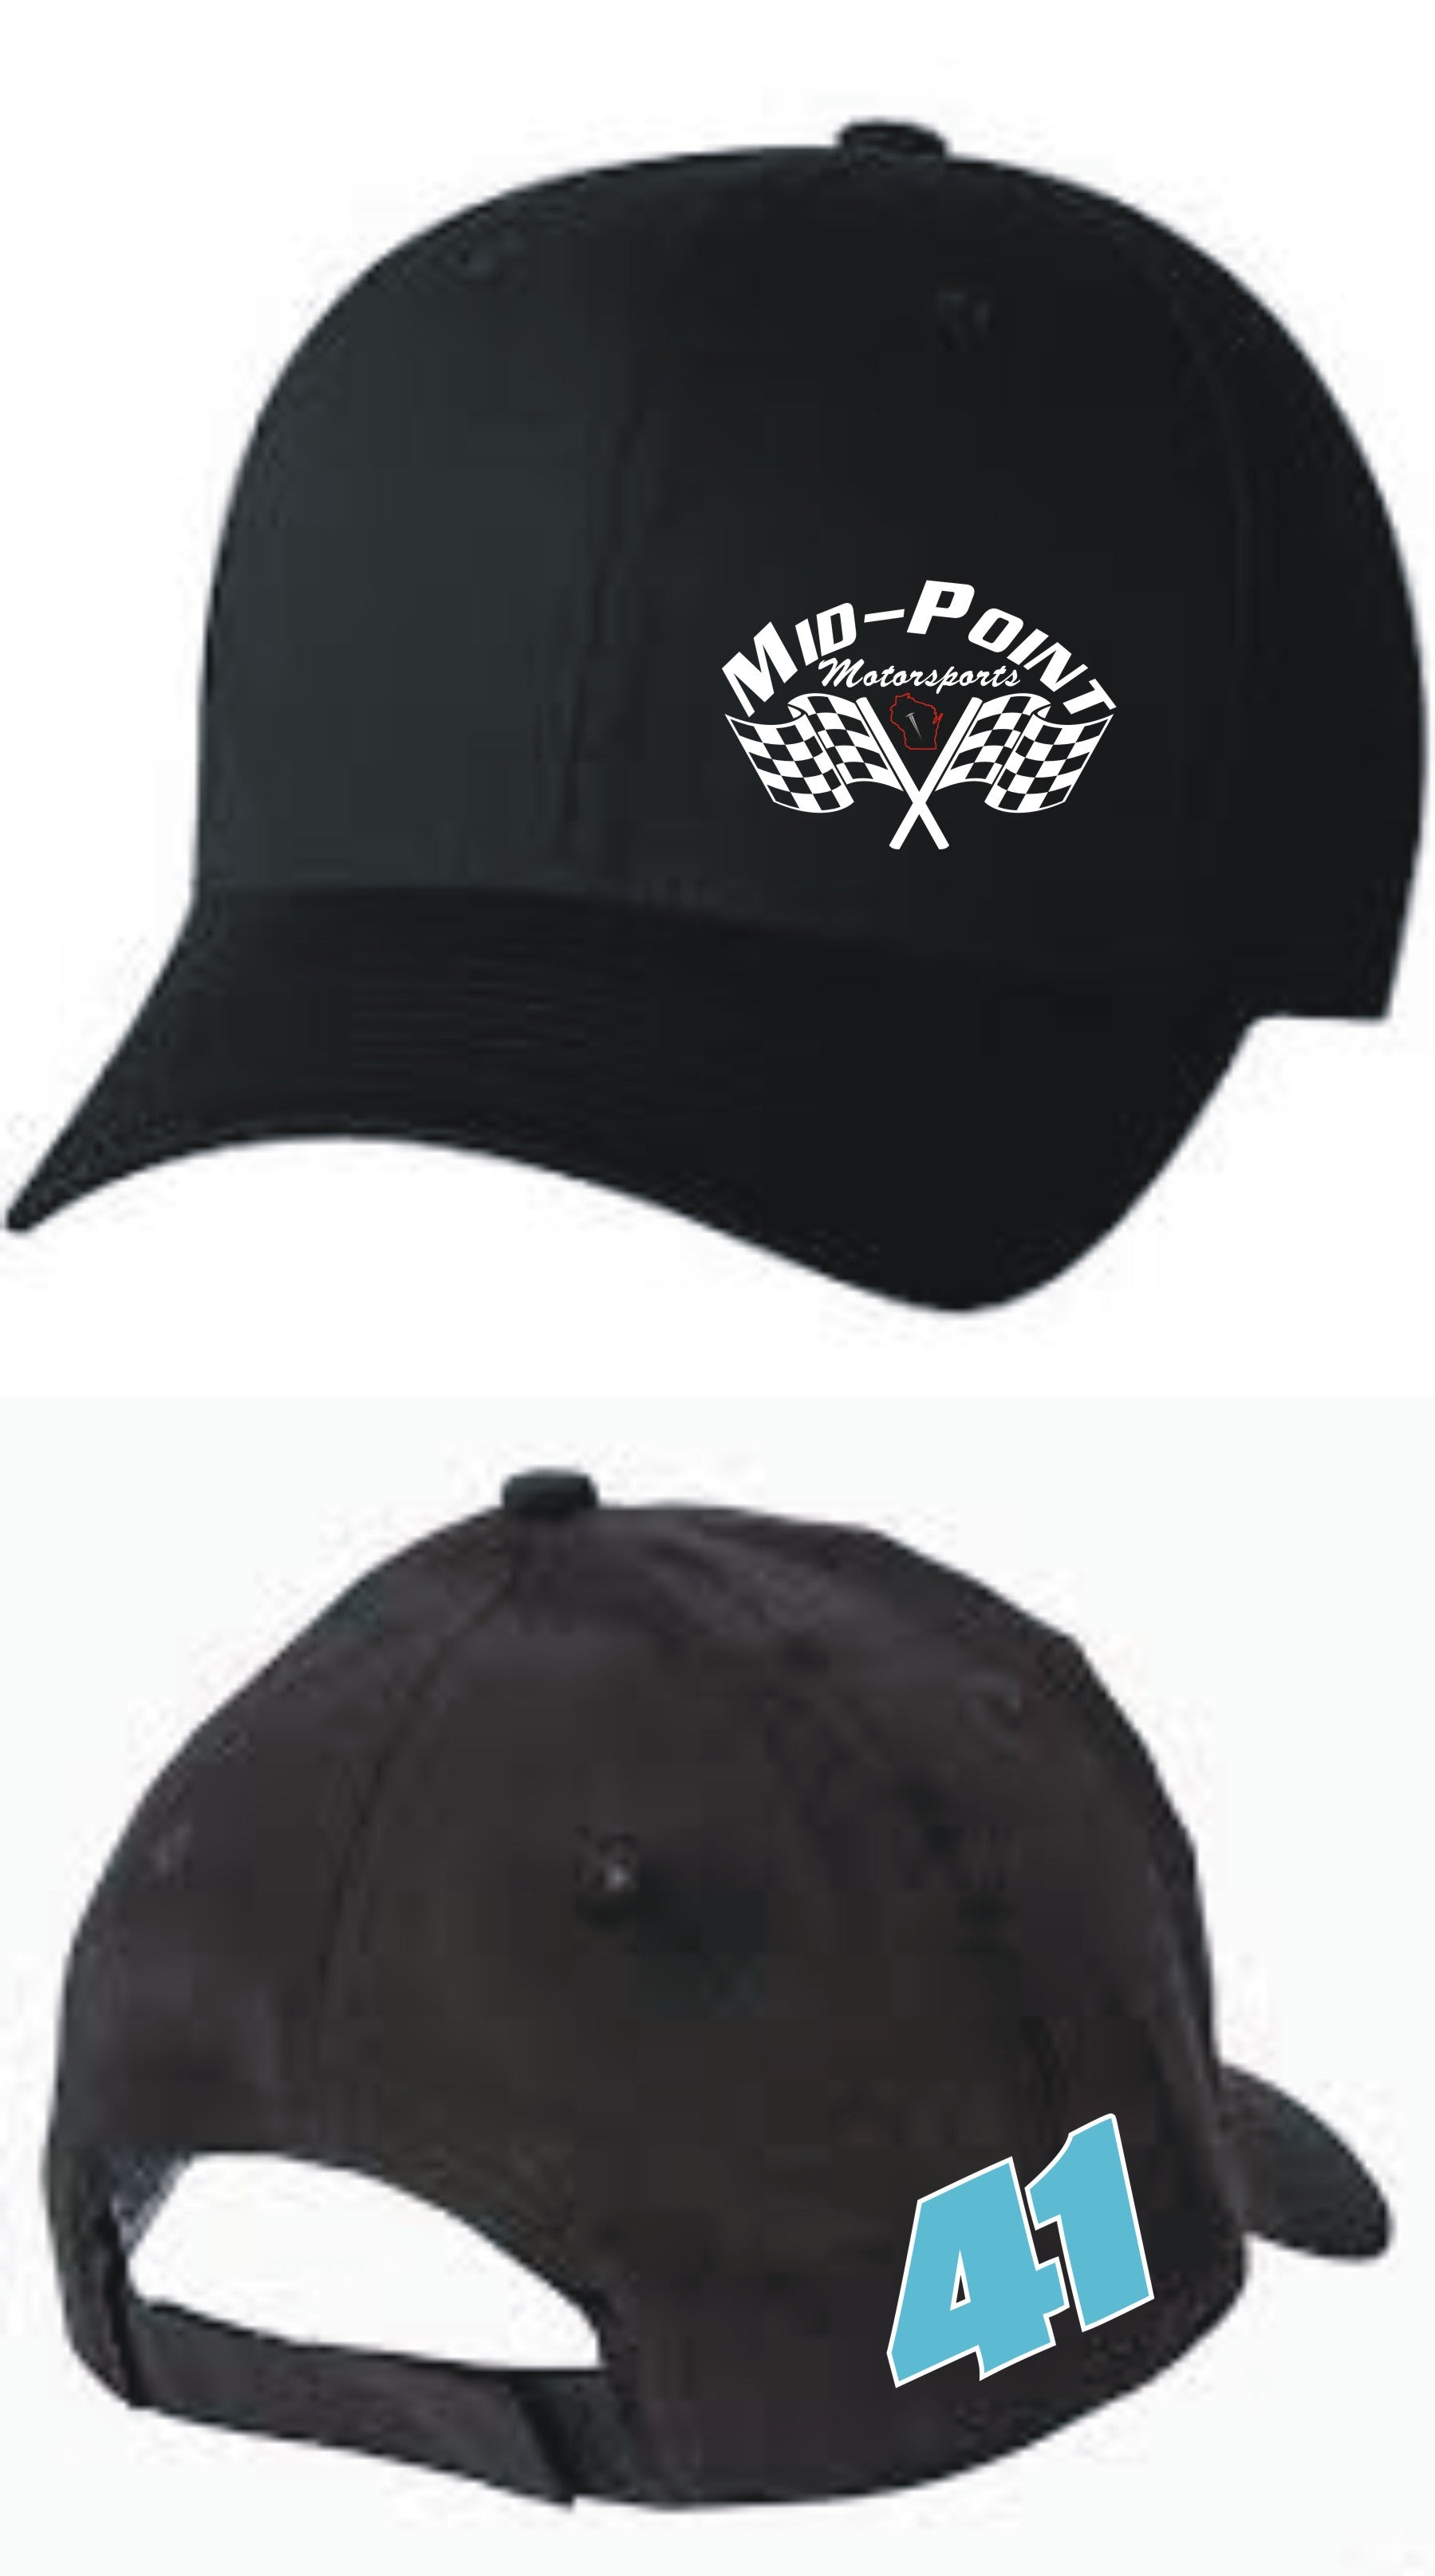 Mid-Point / Lamb Racing Hats